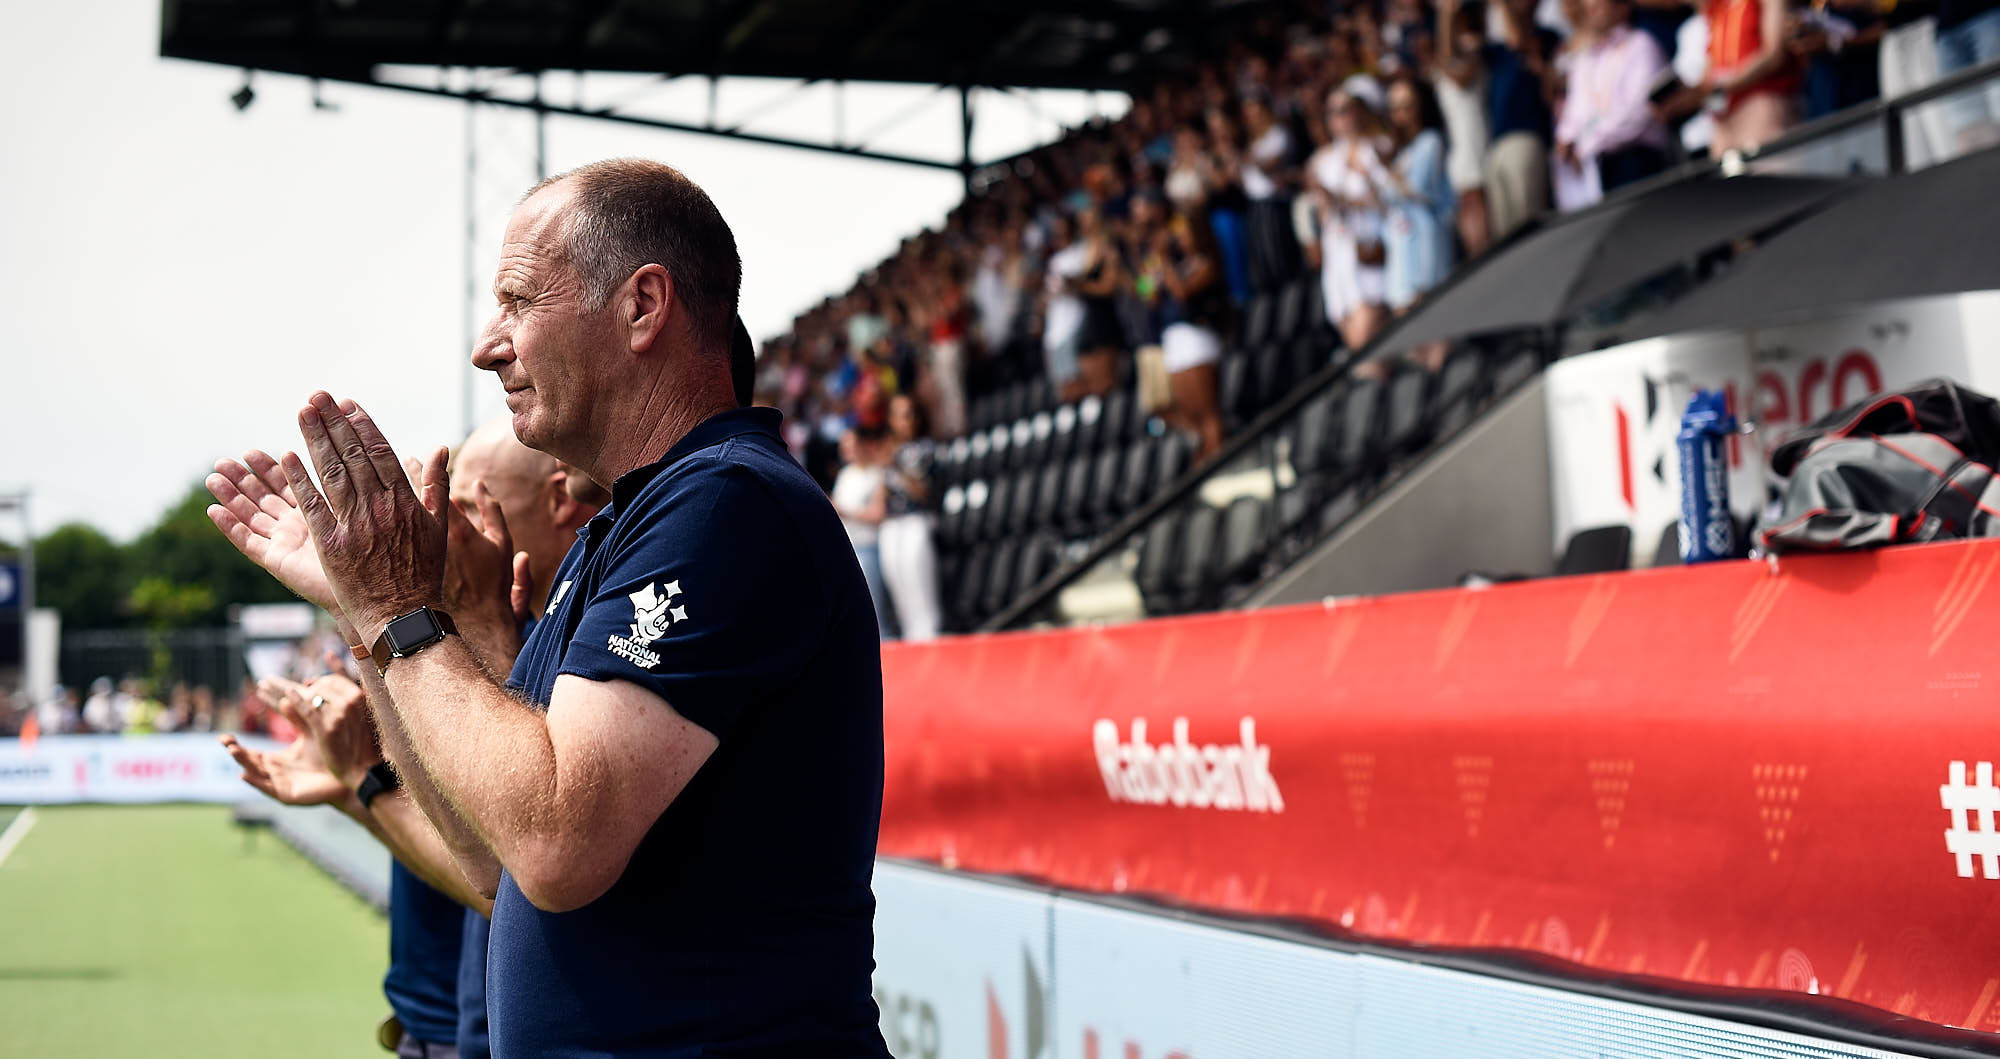 England national hockey team coach during 2019 FIH Pro League Finals in Amsterdam